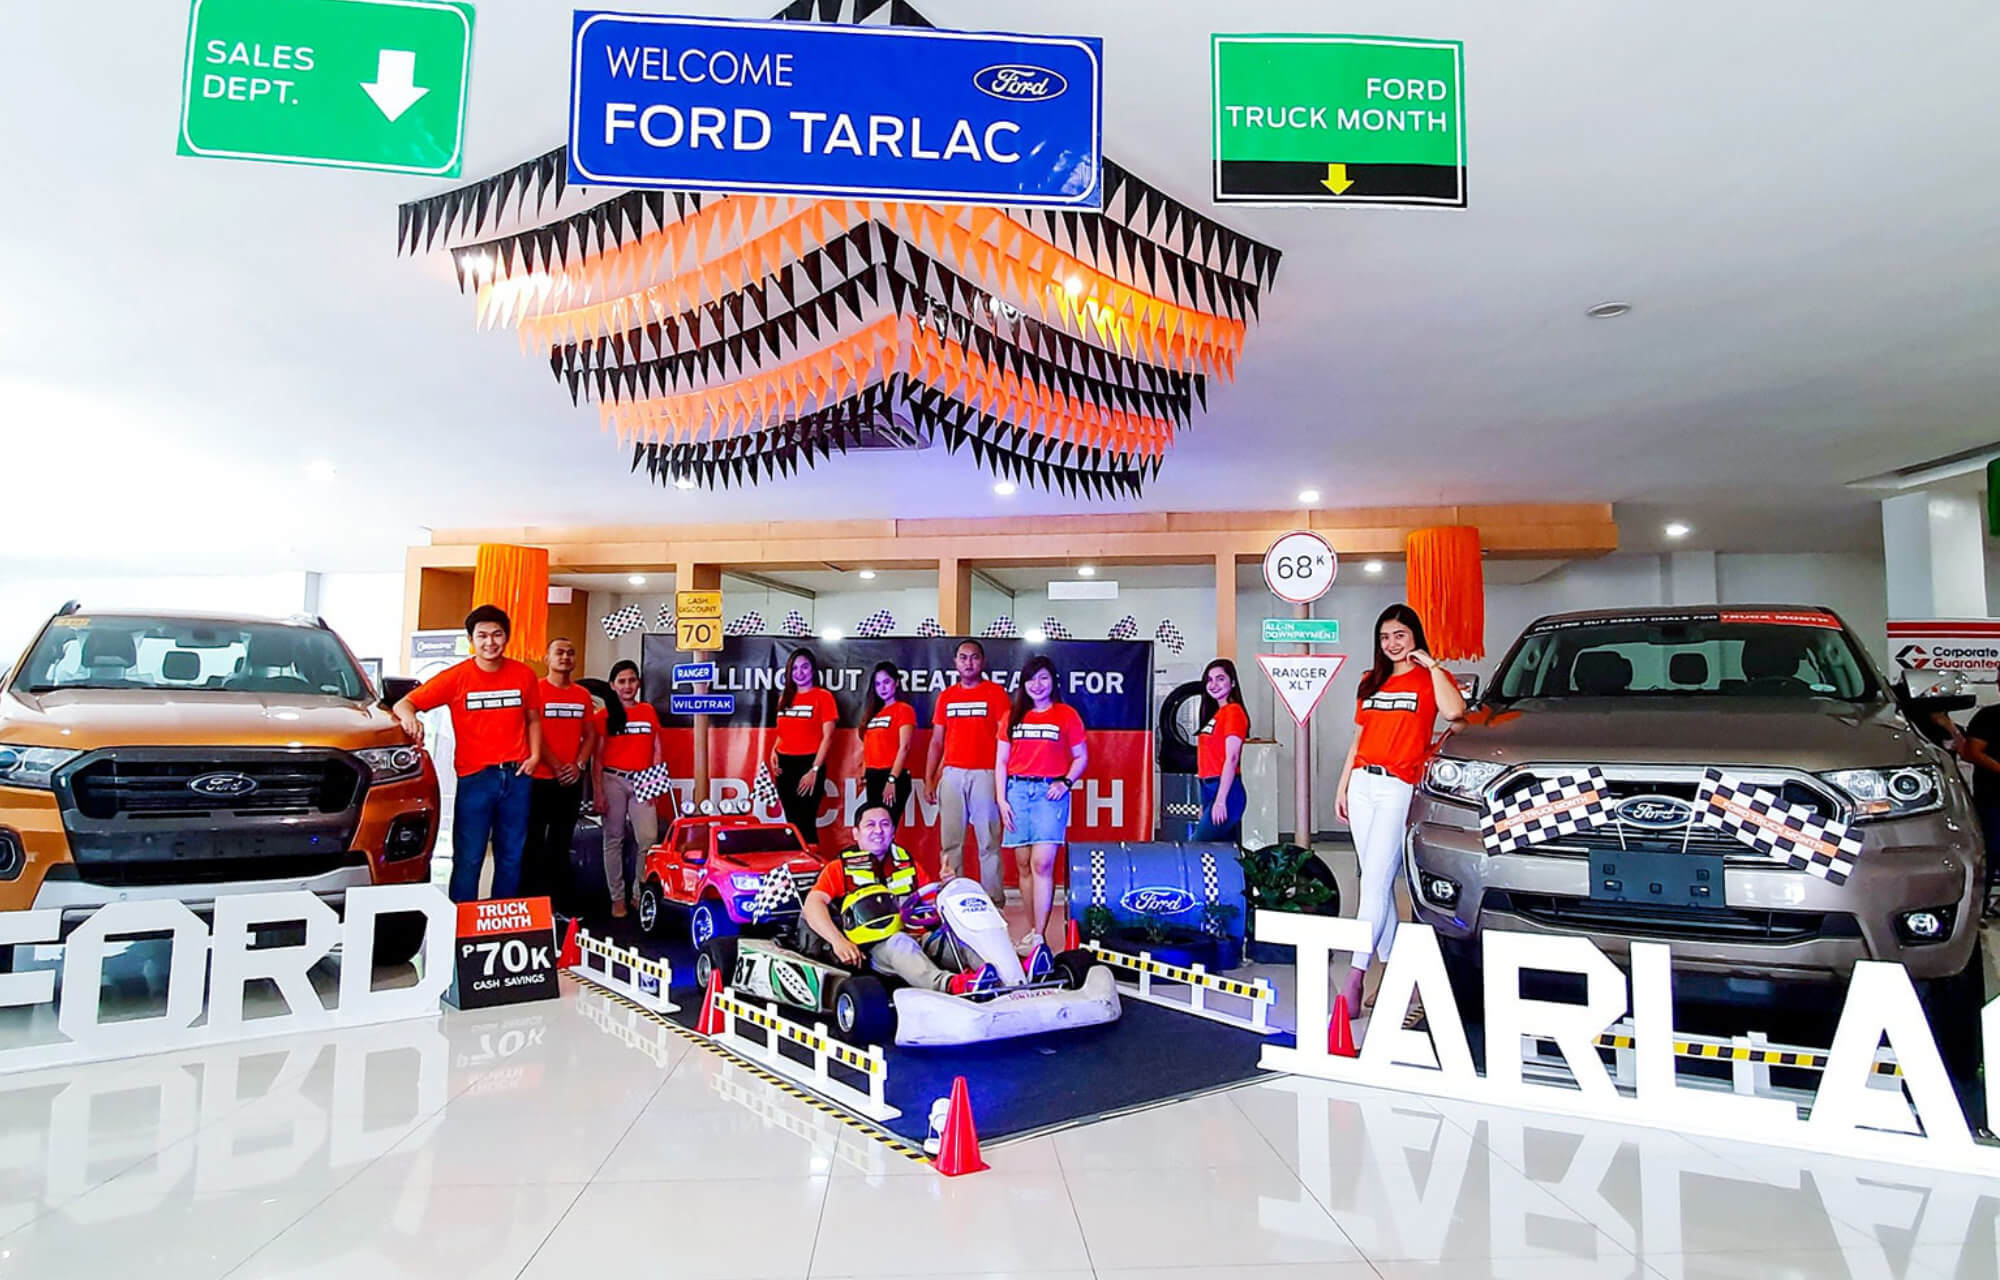 ford ilocs norte-windmills theme for the  ford truck month event